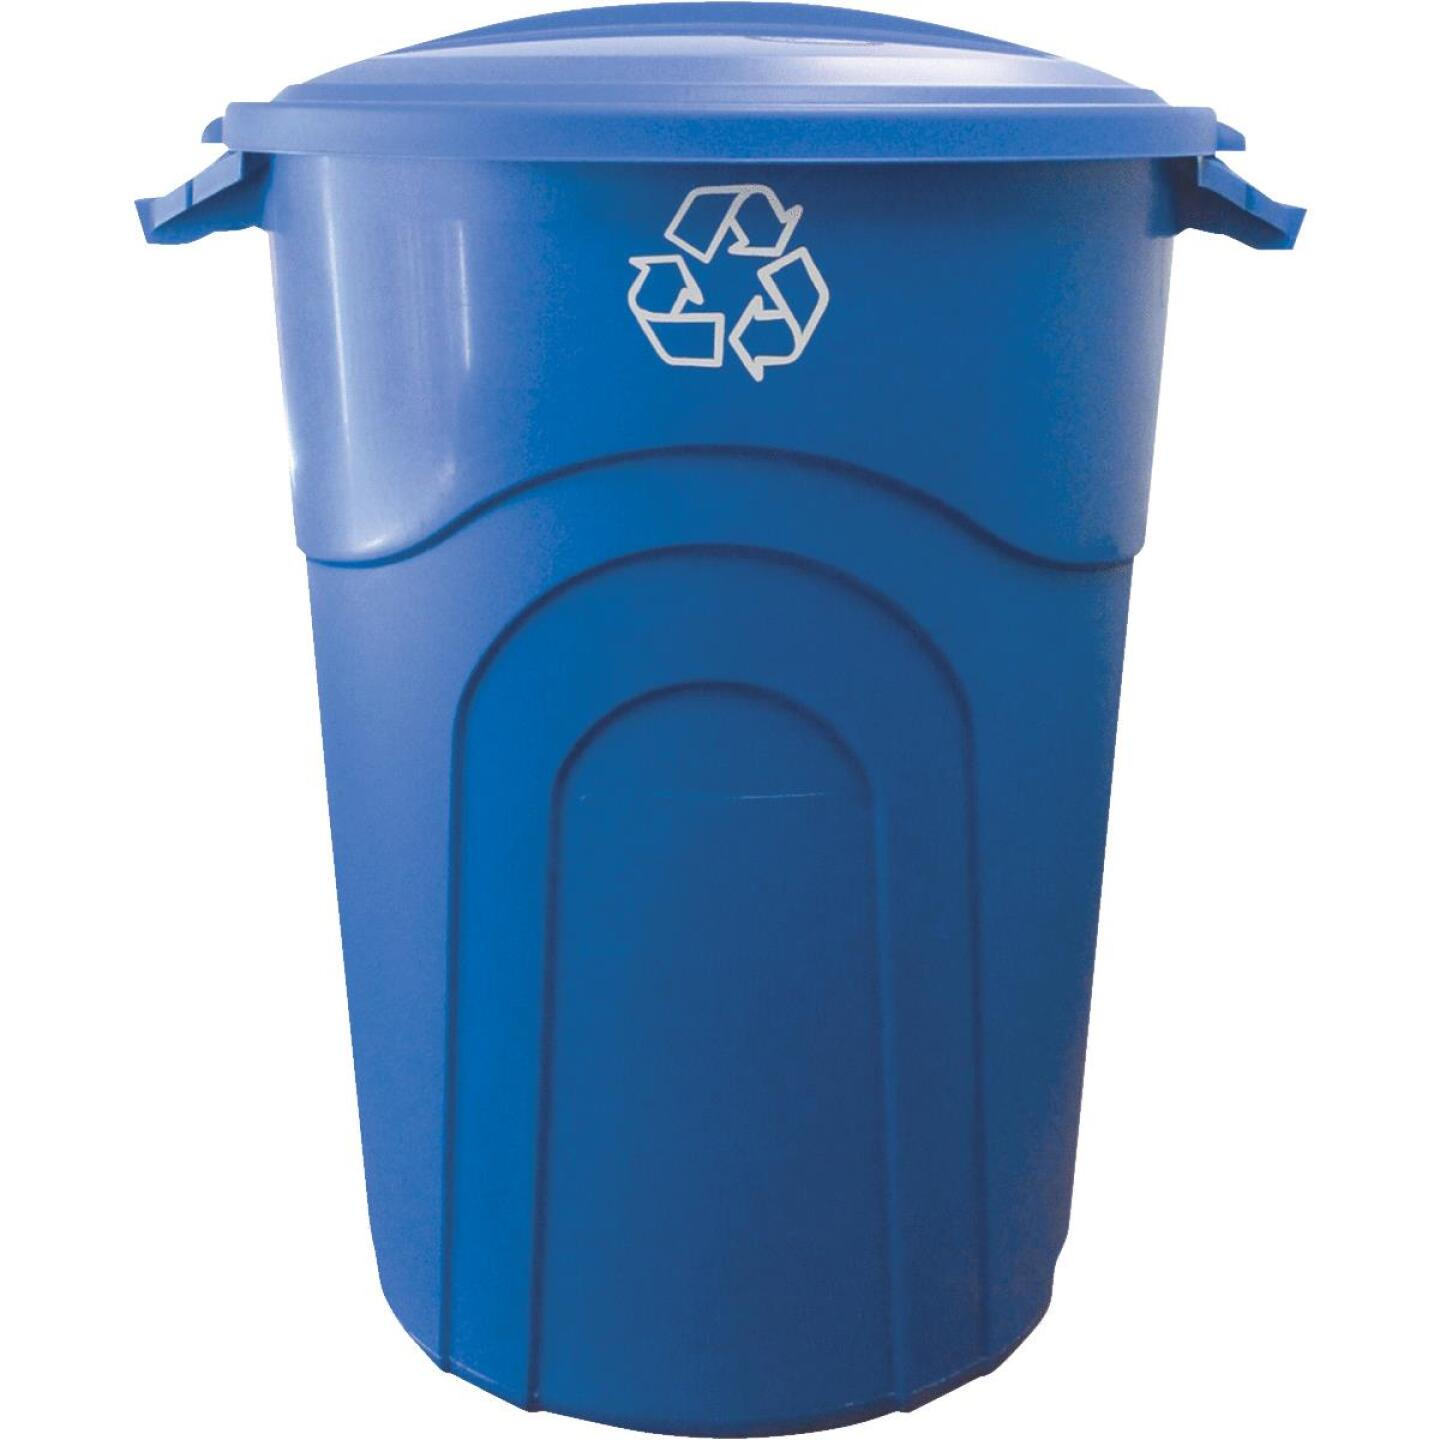 United Solutions 32 Gal. Recycling Trash Can with Lid Image 1